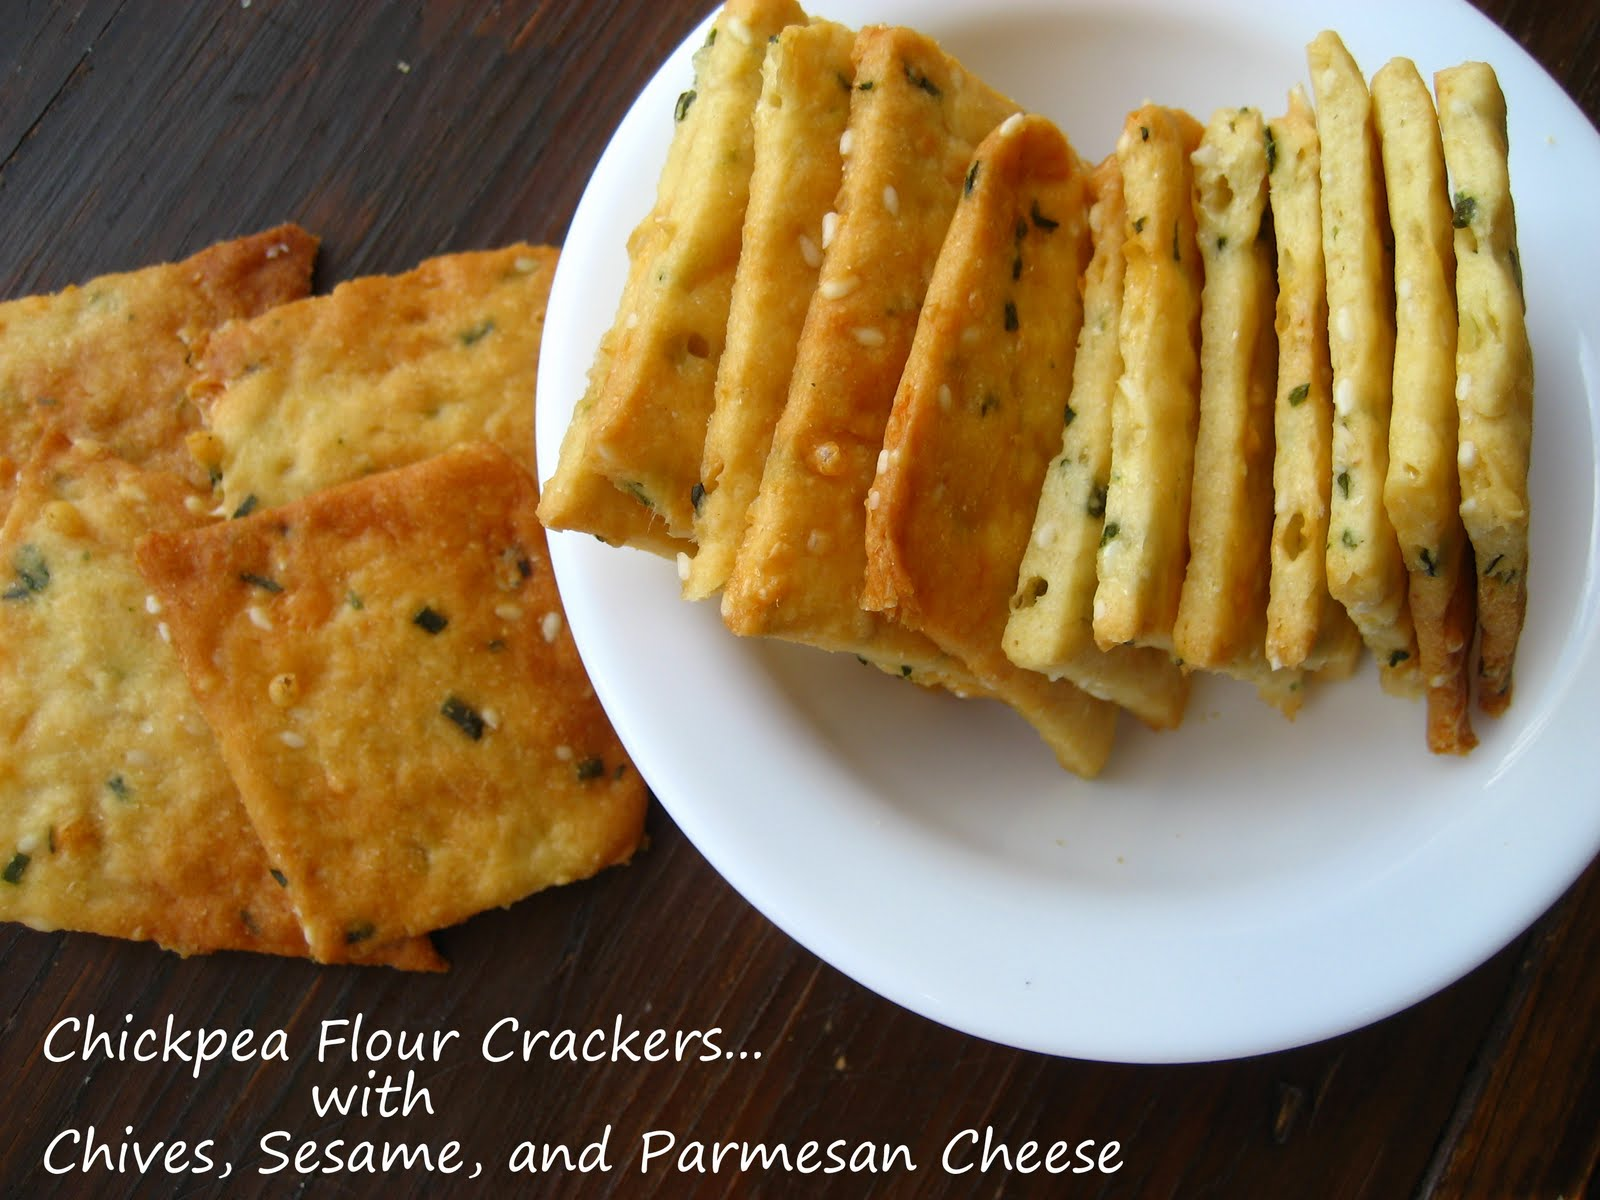 ... : Chickpea Flour Crackers with Chives...Parmesan Crackers Revisited